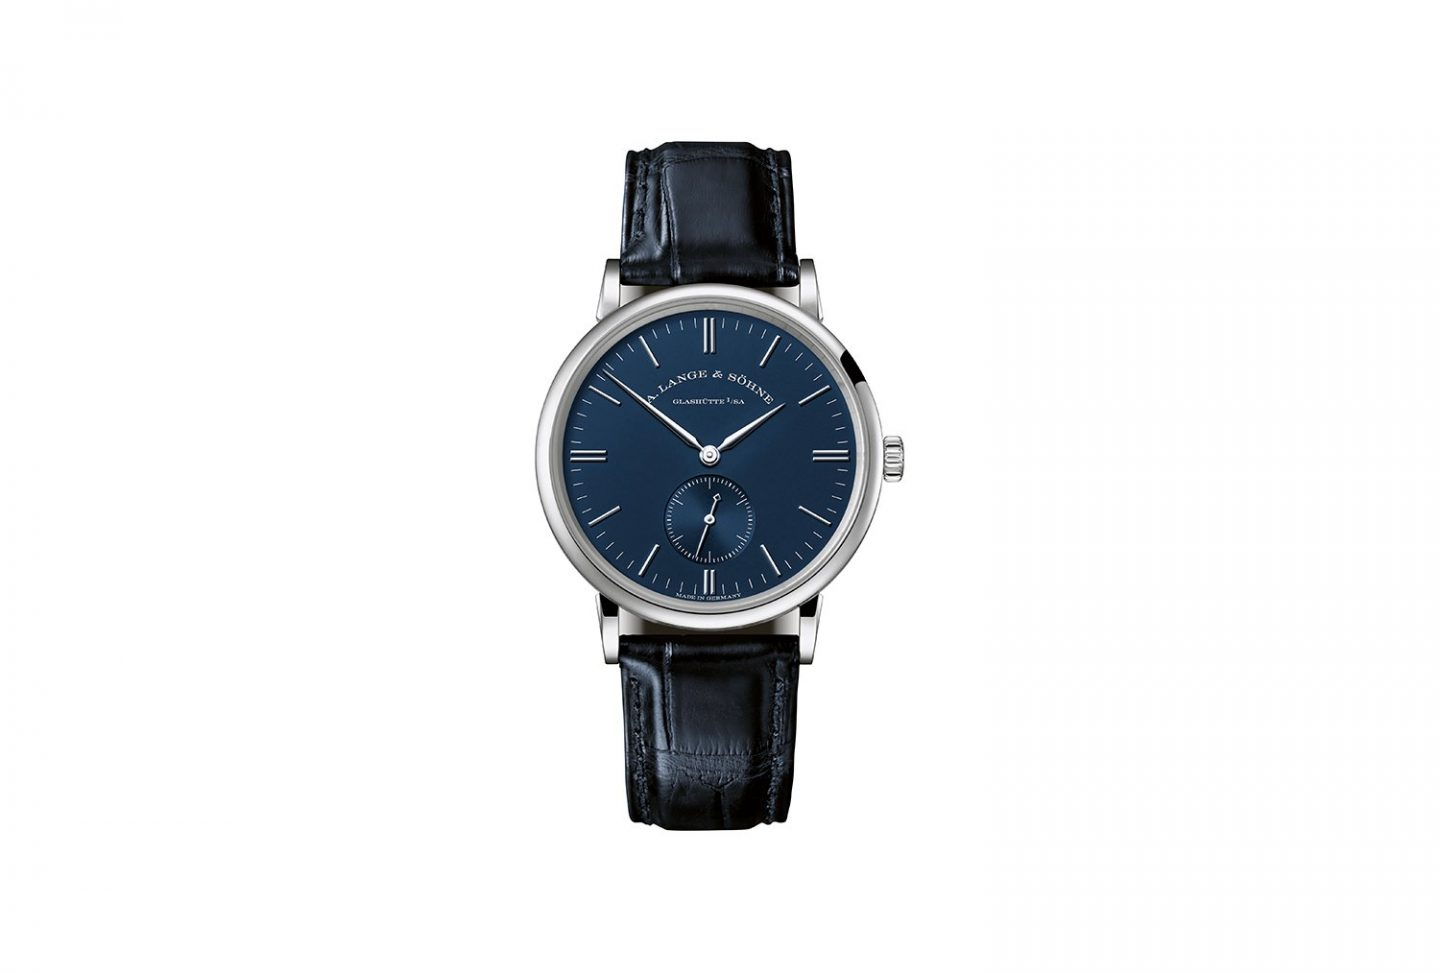 A_Lange_Soehne_Watch_02